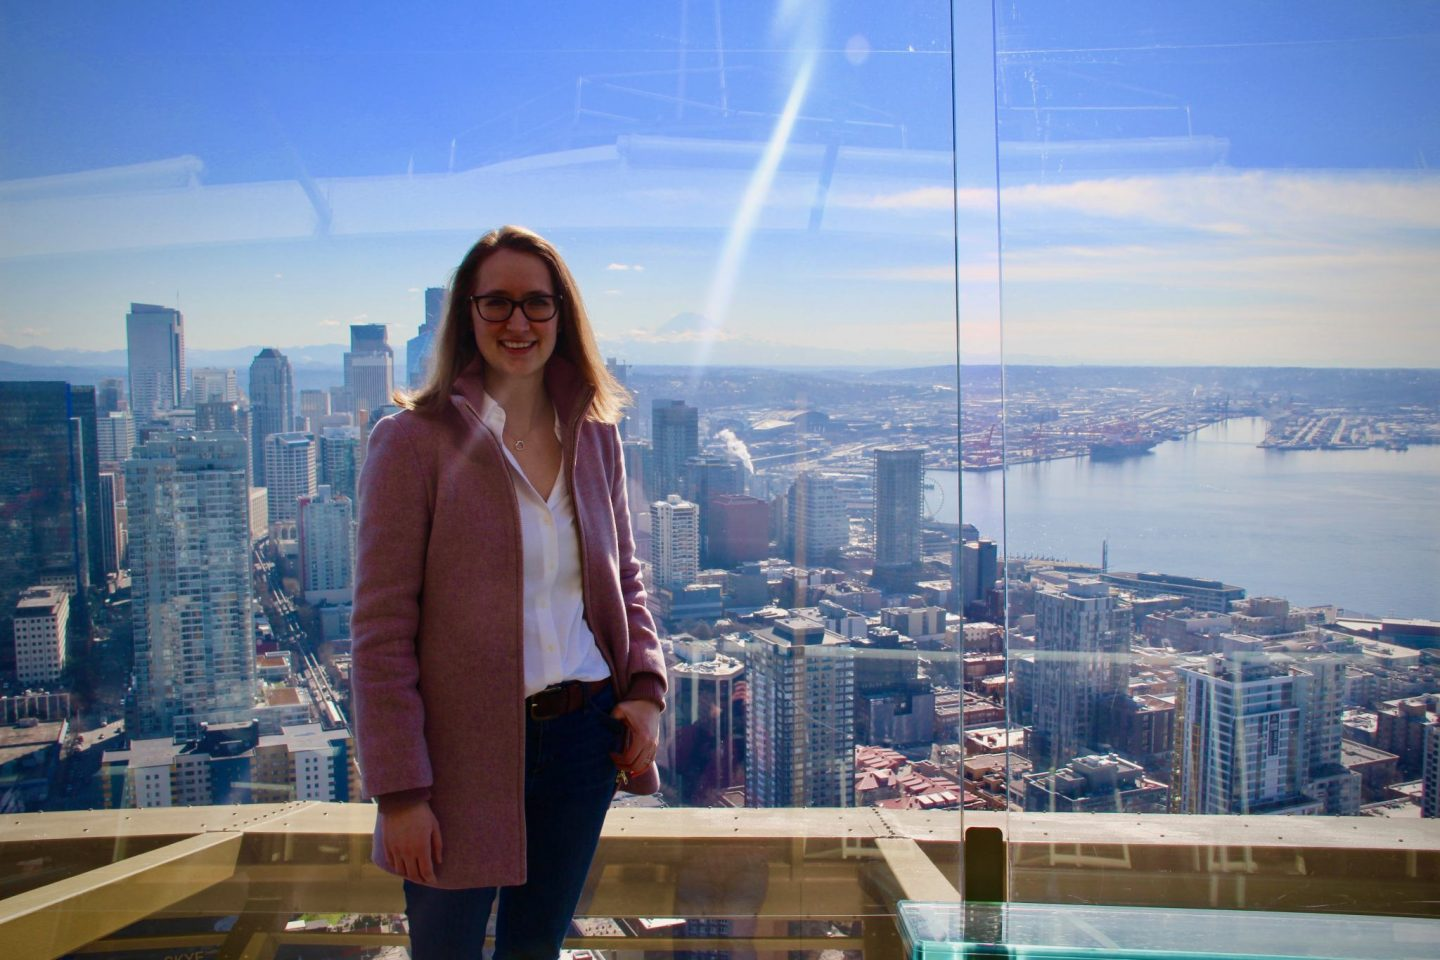 Seattle Space Needle in classic white blouse, Washington ... 24 hours in Seattle ... The Spectacular Adventurer